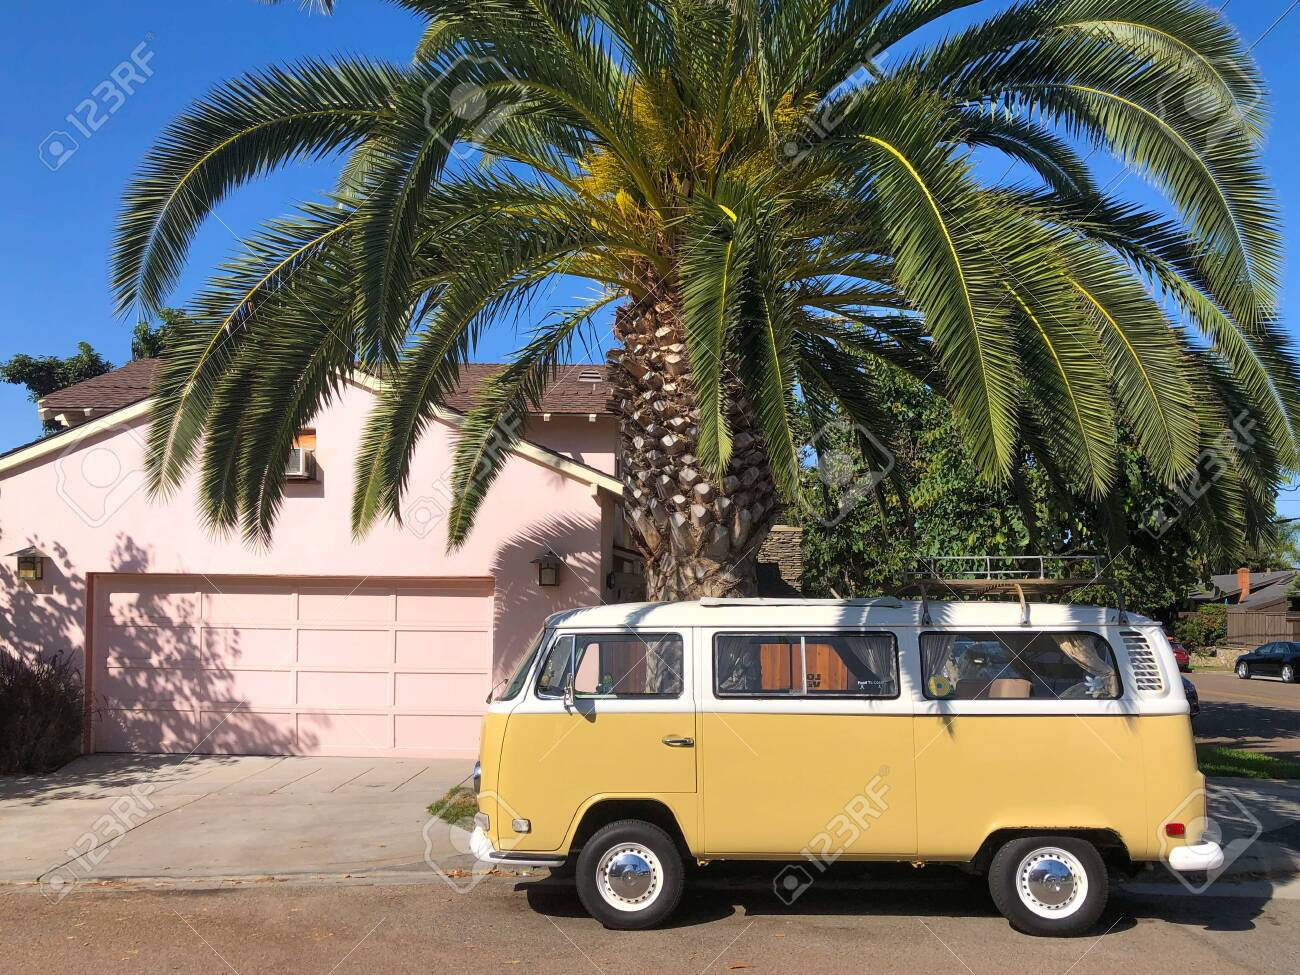 Classic Beige And White Vintage Volkswagen T1 Camper Van Parked Stock Photo Picture And Royalty Free Image Image 135749459